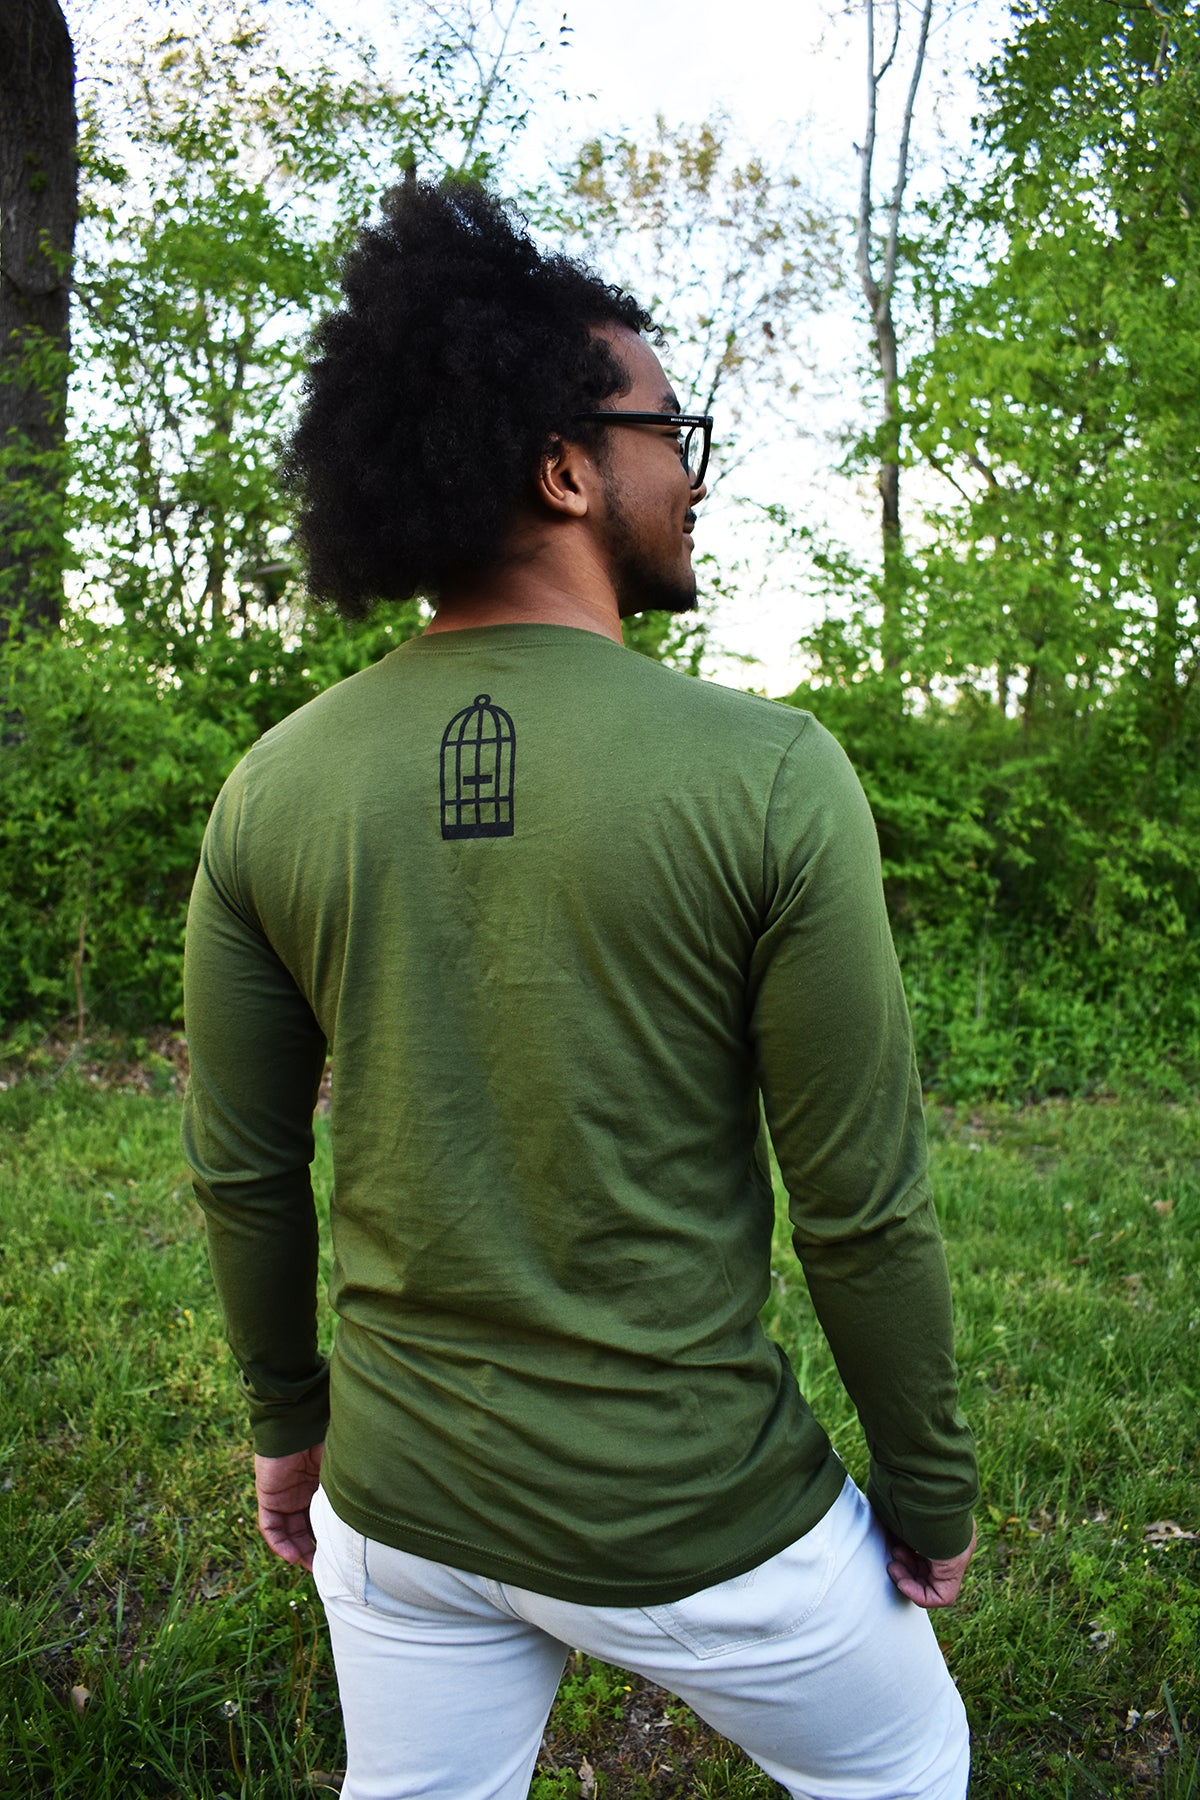 Male model wearing a green, long-sleeved shirt with a small, No Egrets Birdcage logo in black on the back in between the shoulders.